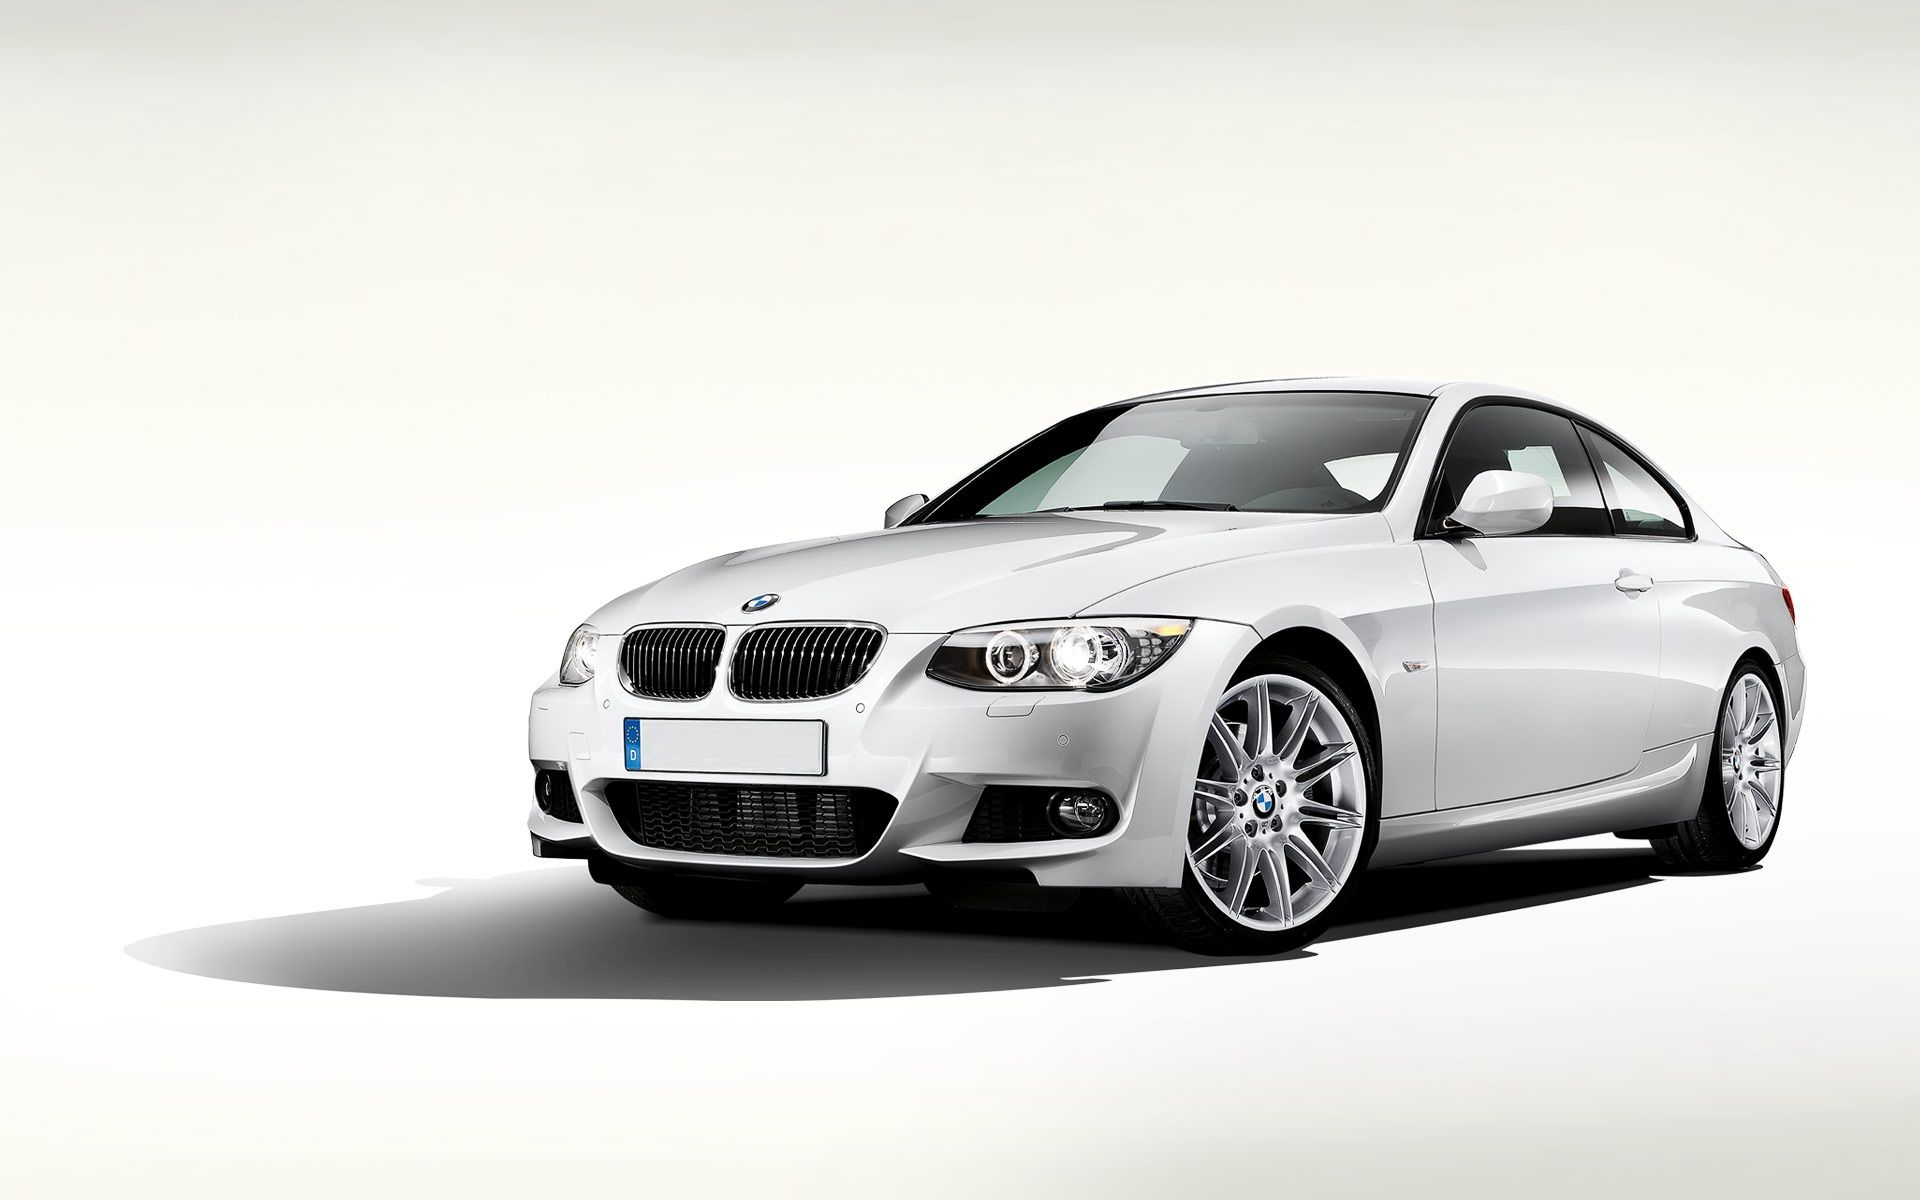 BMW 3 Series For Sale We have a large collection of new